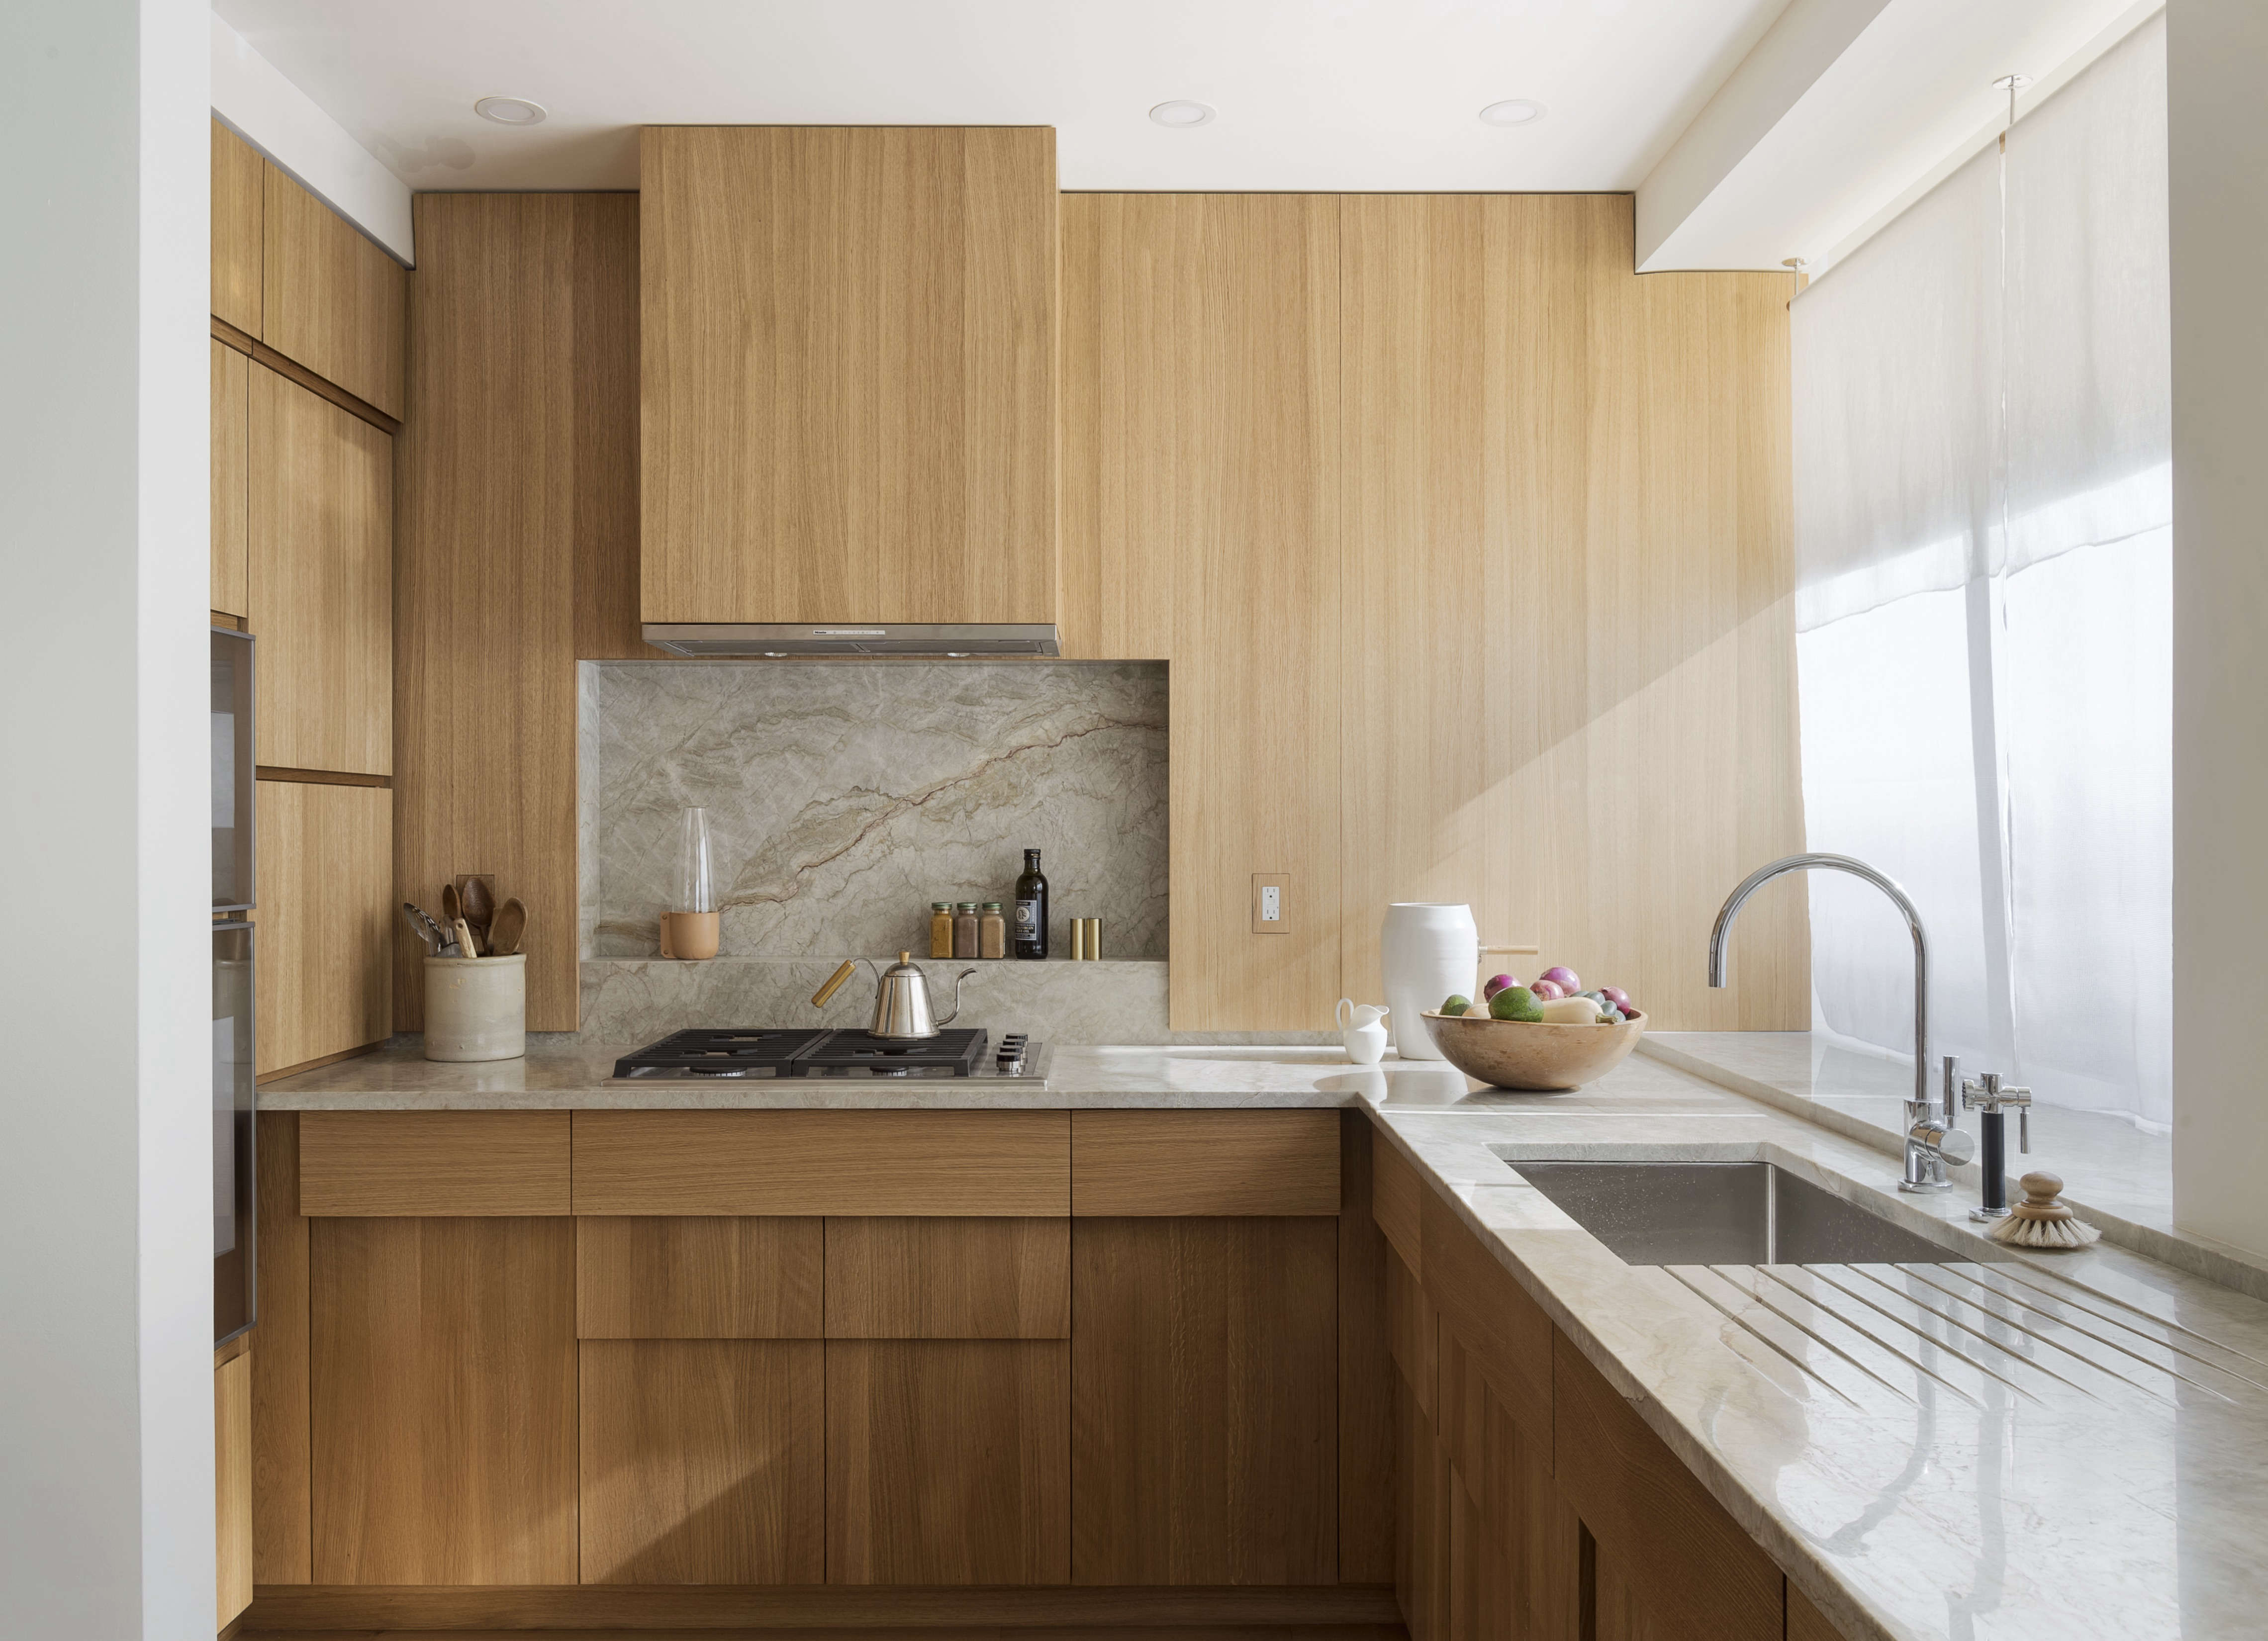 Stepped Oak Cabinets In A Compact Kitchen Remodel NYC By Workstead Design Matthew Williams